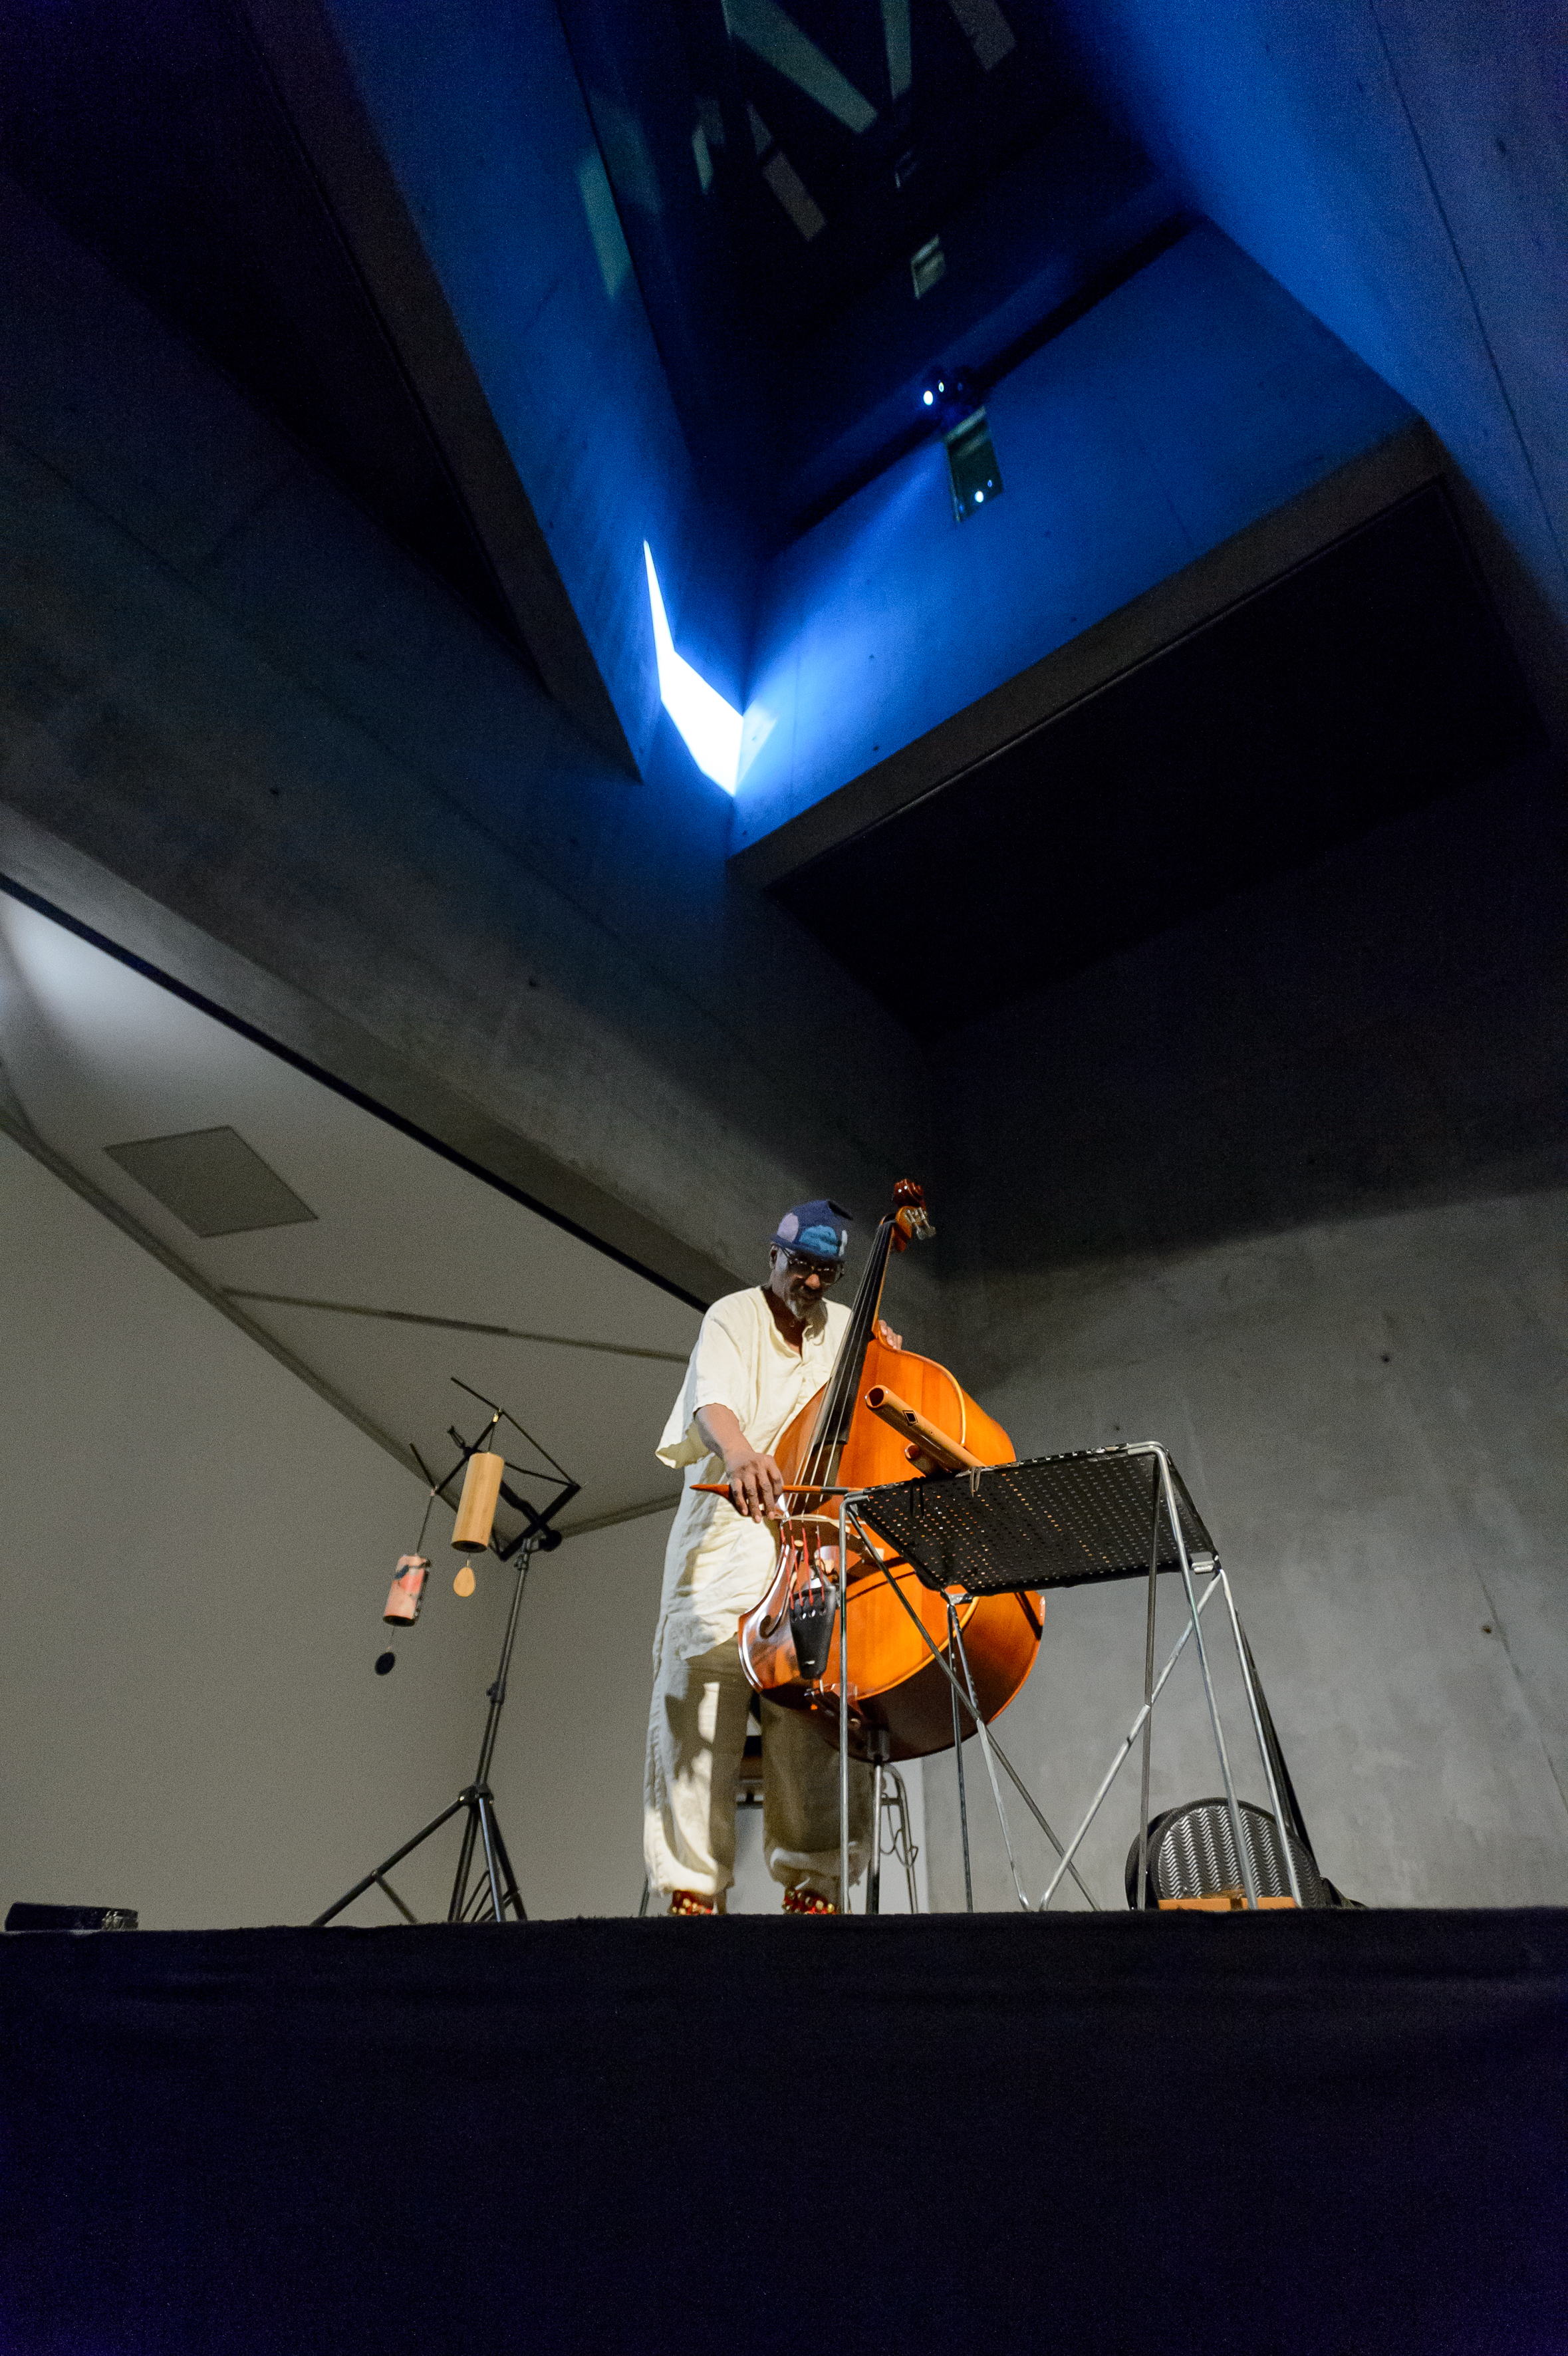 Concert William Parker, 23.03.2018, IN: res·o·nant, 2017, Installation Jüdisches Museum Berlin / © Archive Mischa Kuball, Düsseldorf / VG Bild-Kunst, Bonn 2018